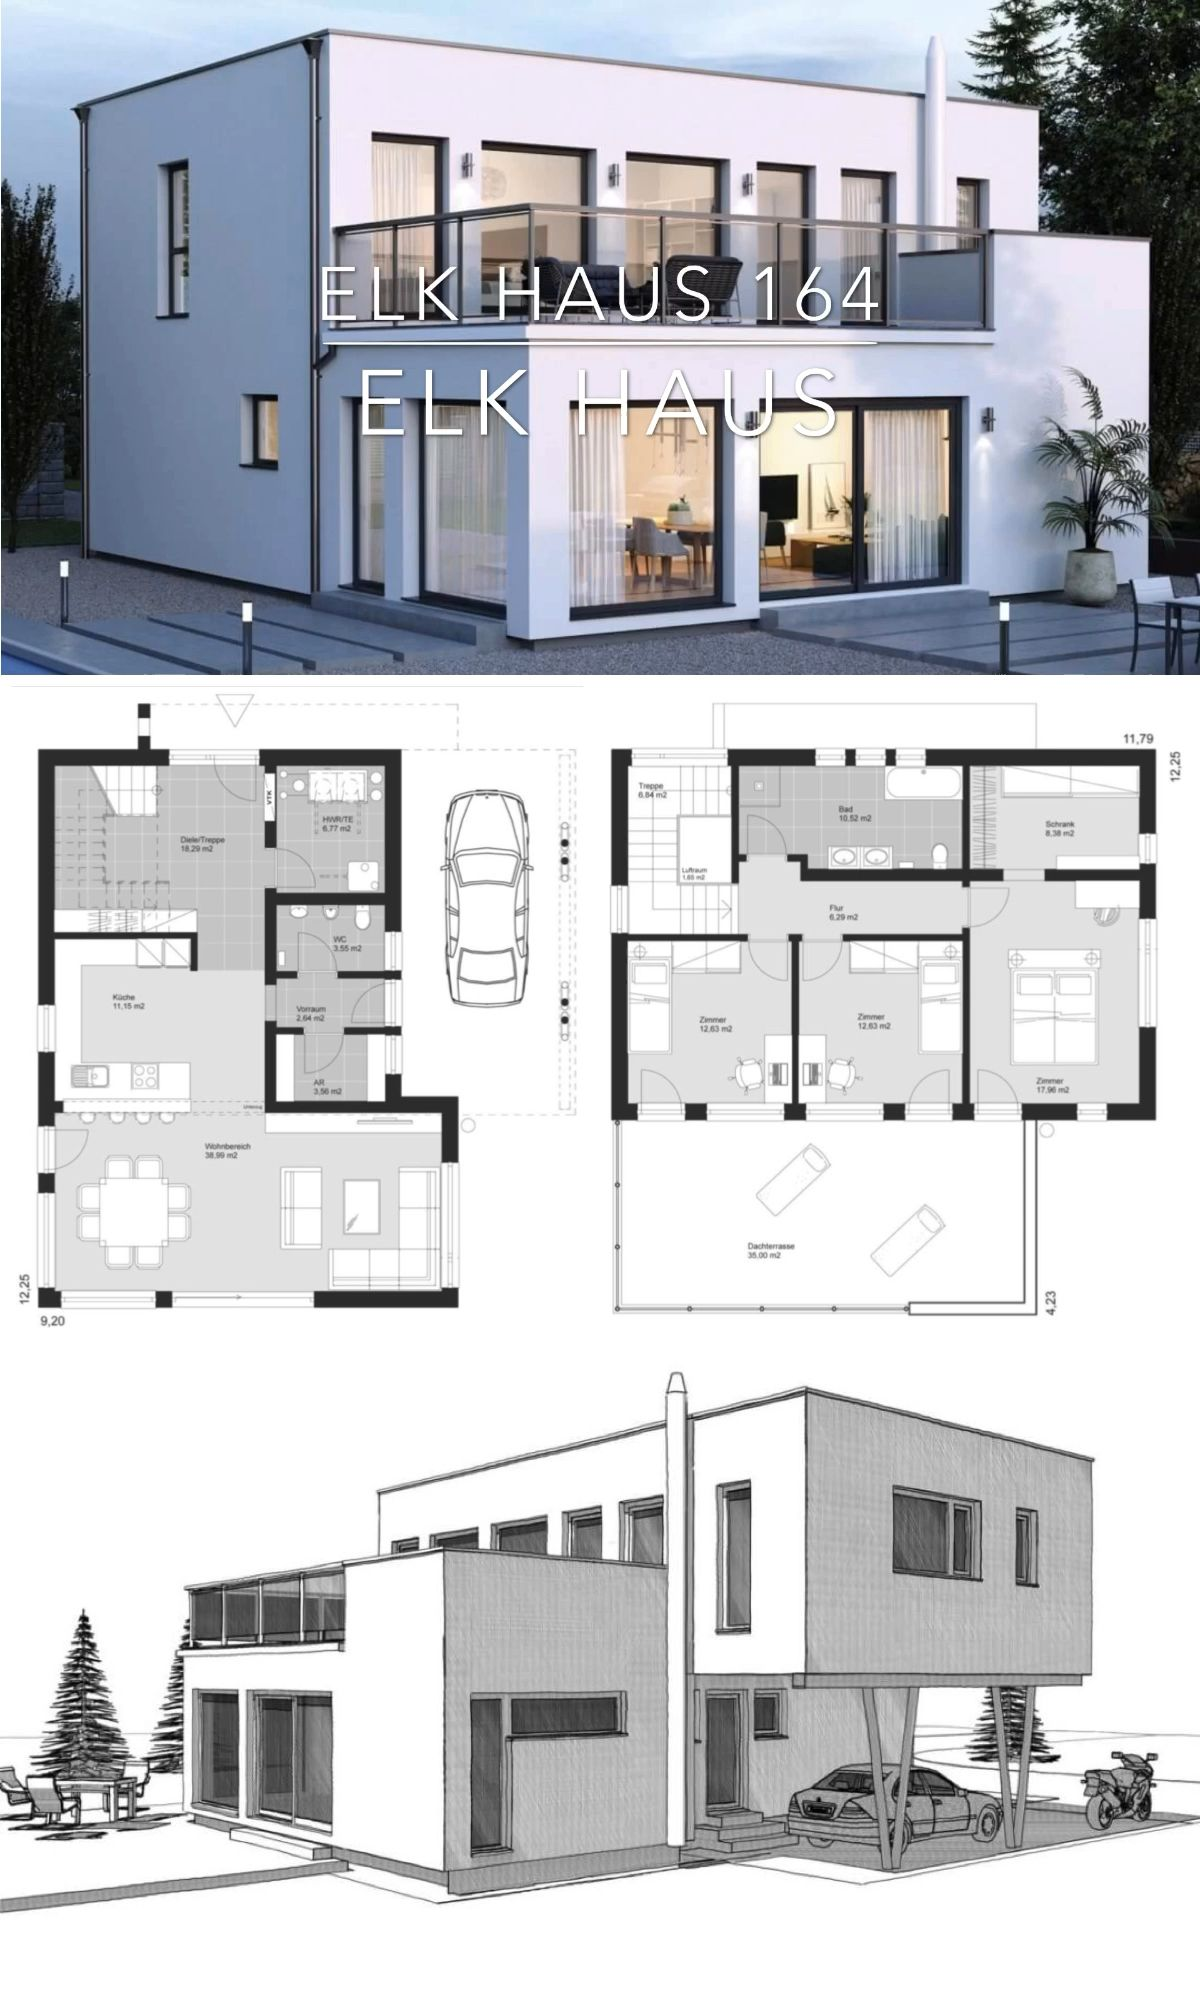 Modern Luxury Villa House Plan & Bauhaus Architecture Design Ideas - ELK Haus 164 #garageplans